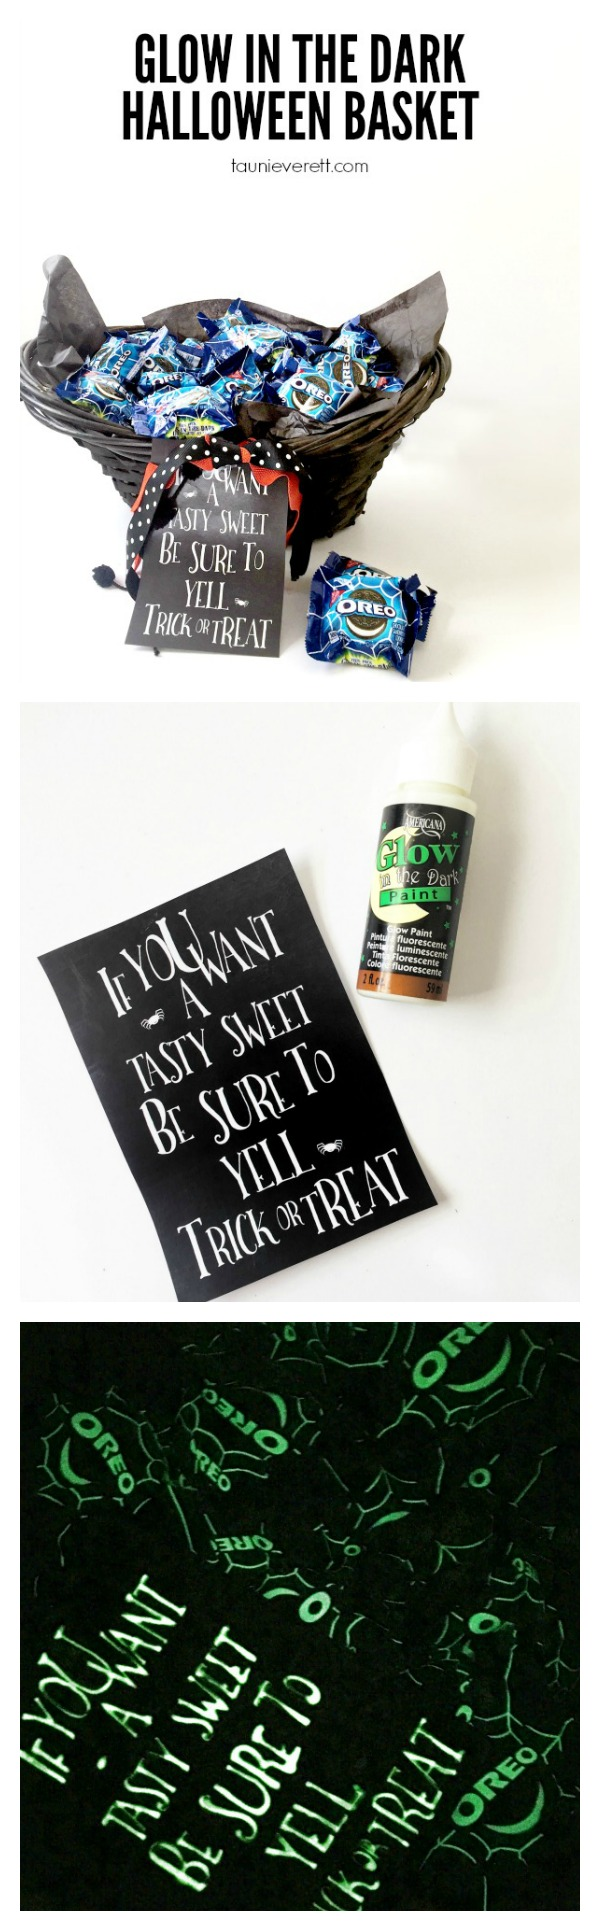 Glow in the dark Halloween treat basket. This is perfect for late night trunk or treat, parties, etc. I love the free printable too.